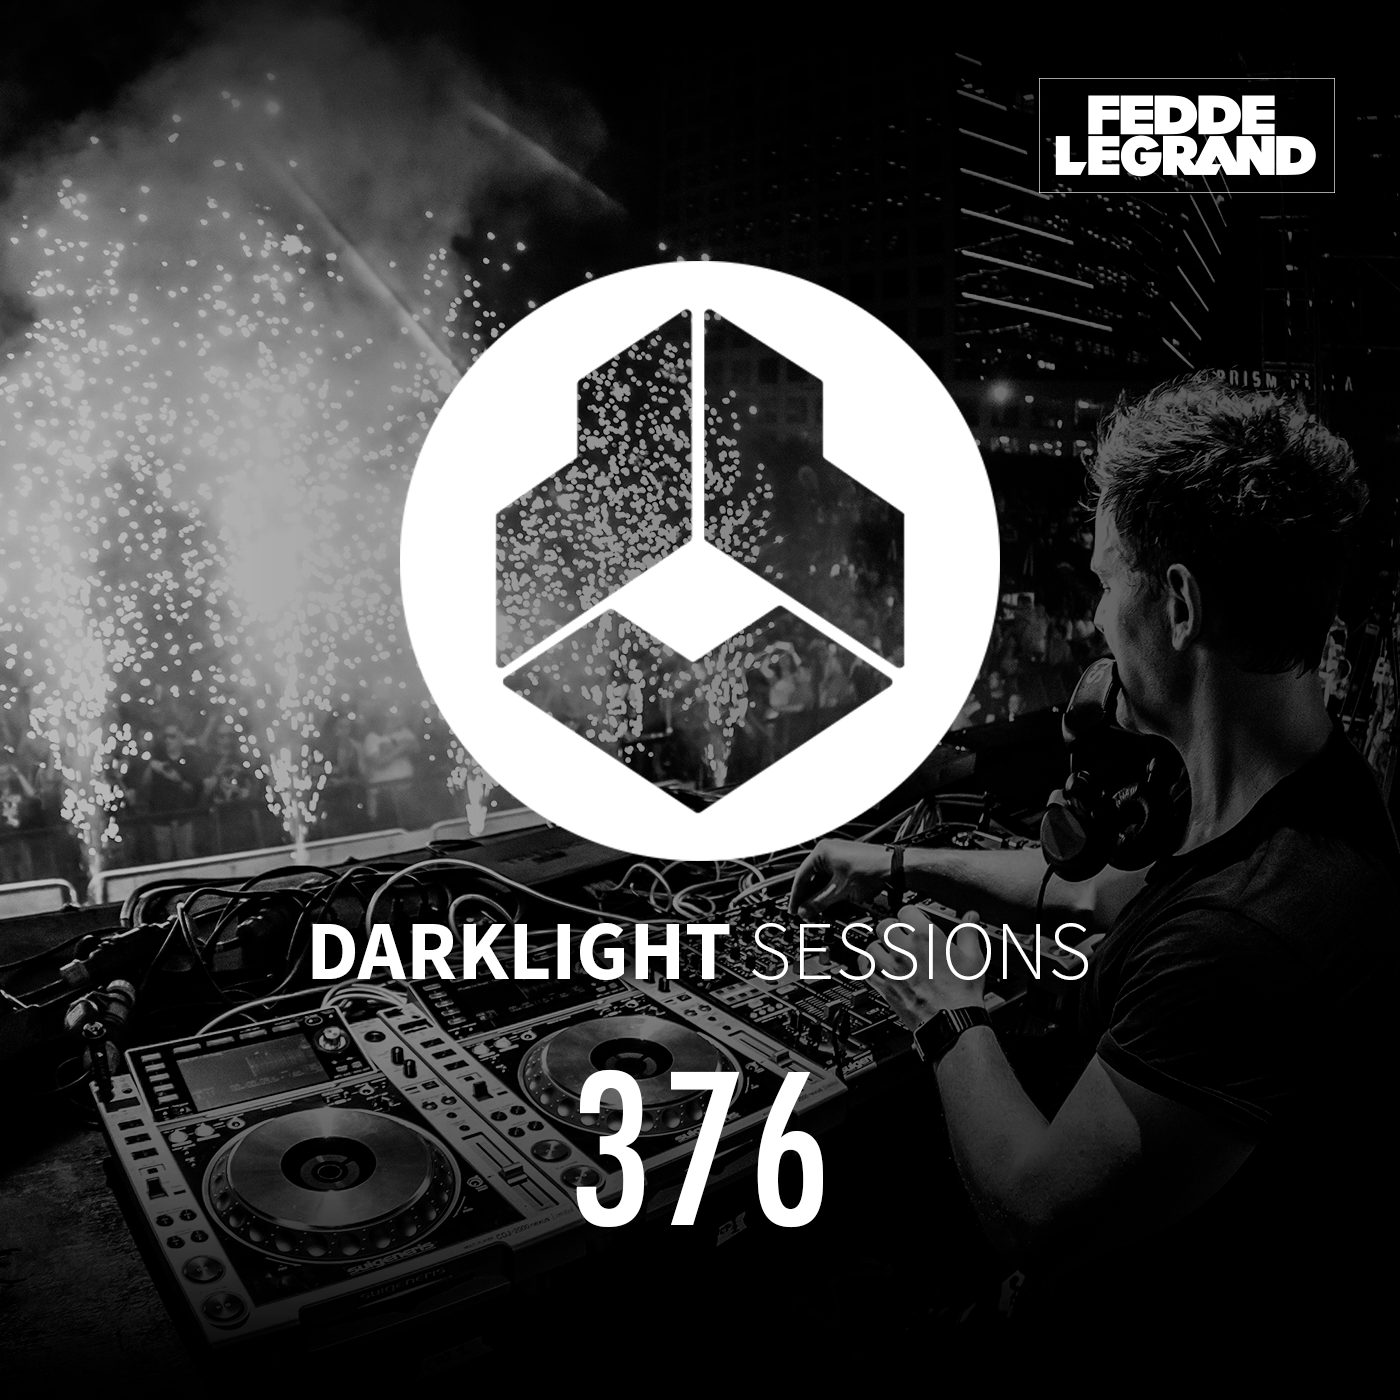 Darklight Sessions 376